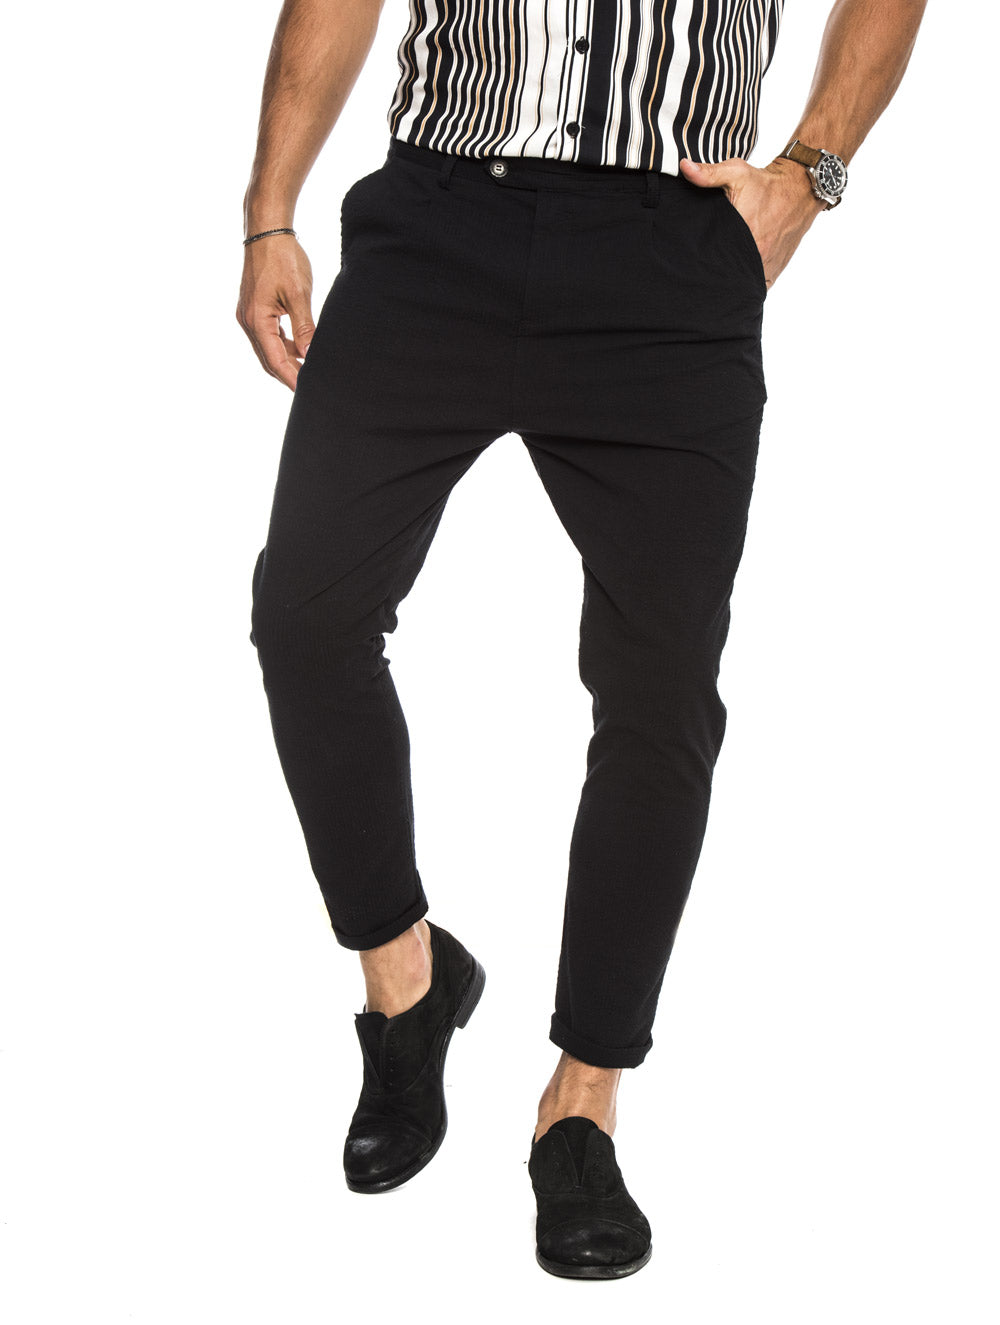 DUBAI SEERSUCKER TROUSERS IN BLACK